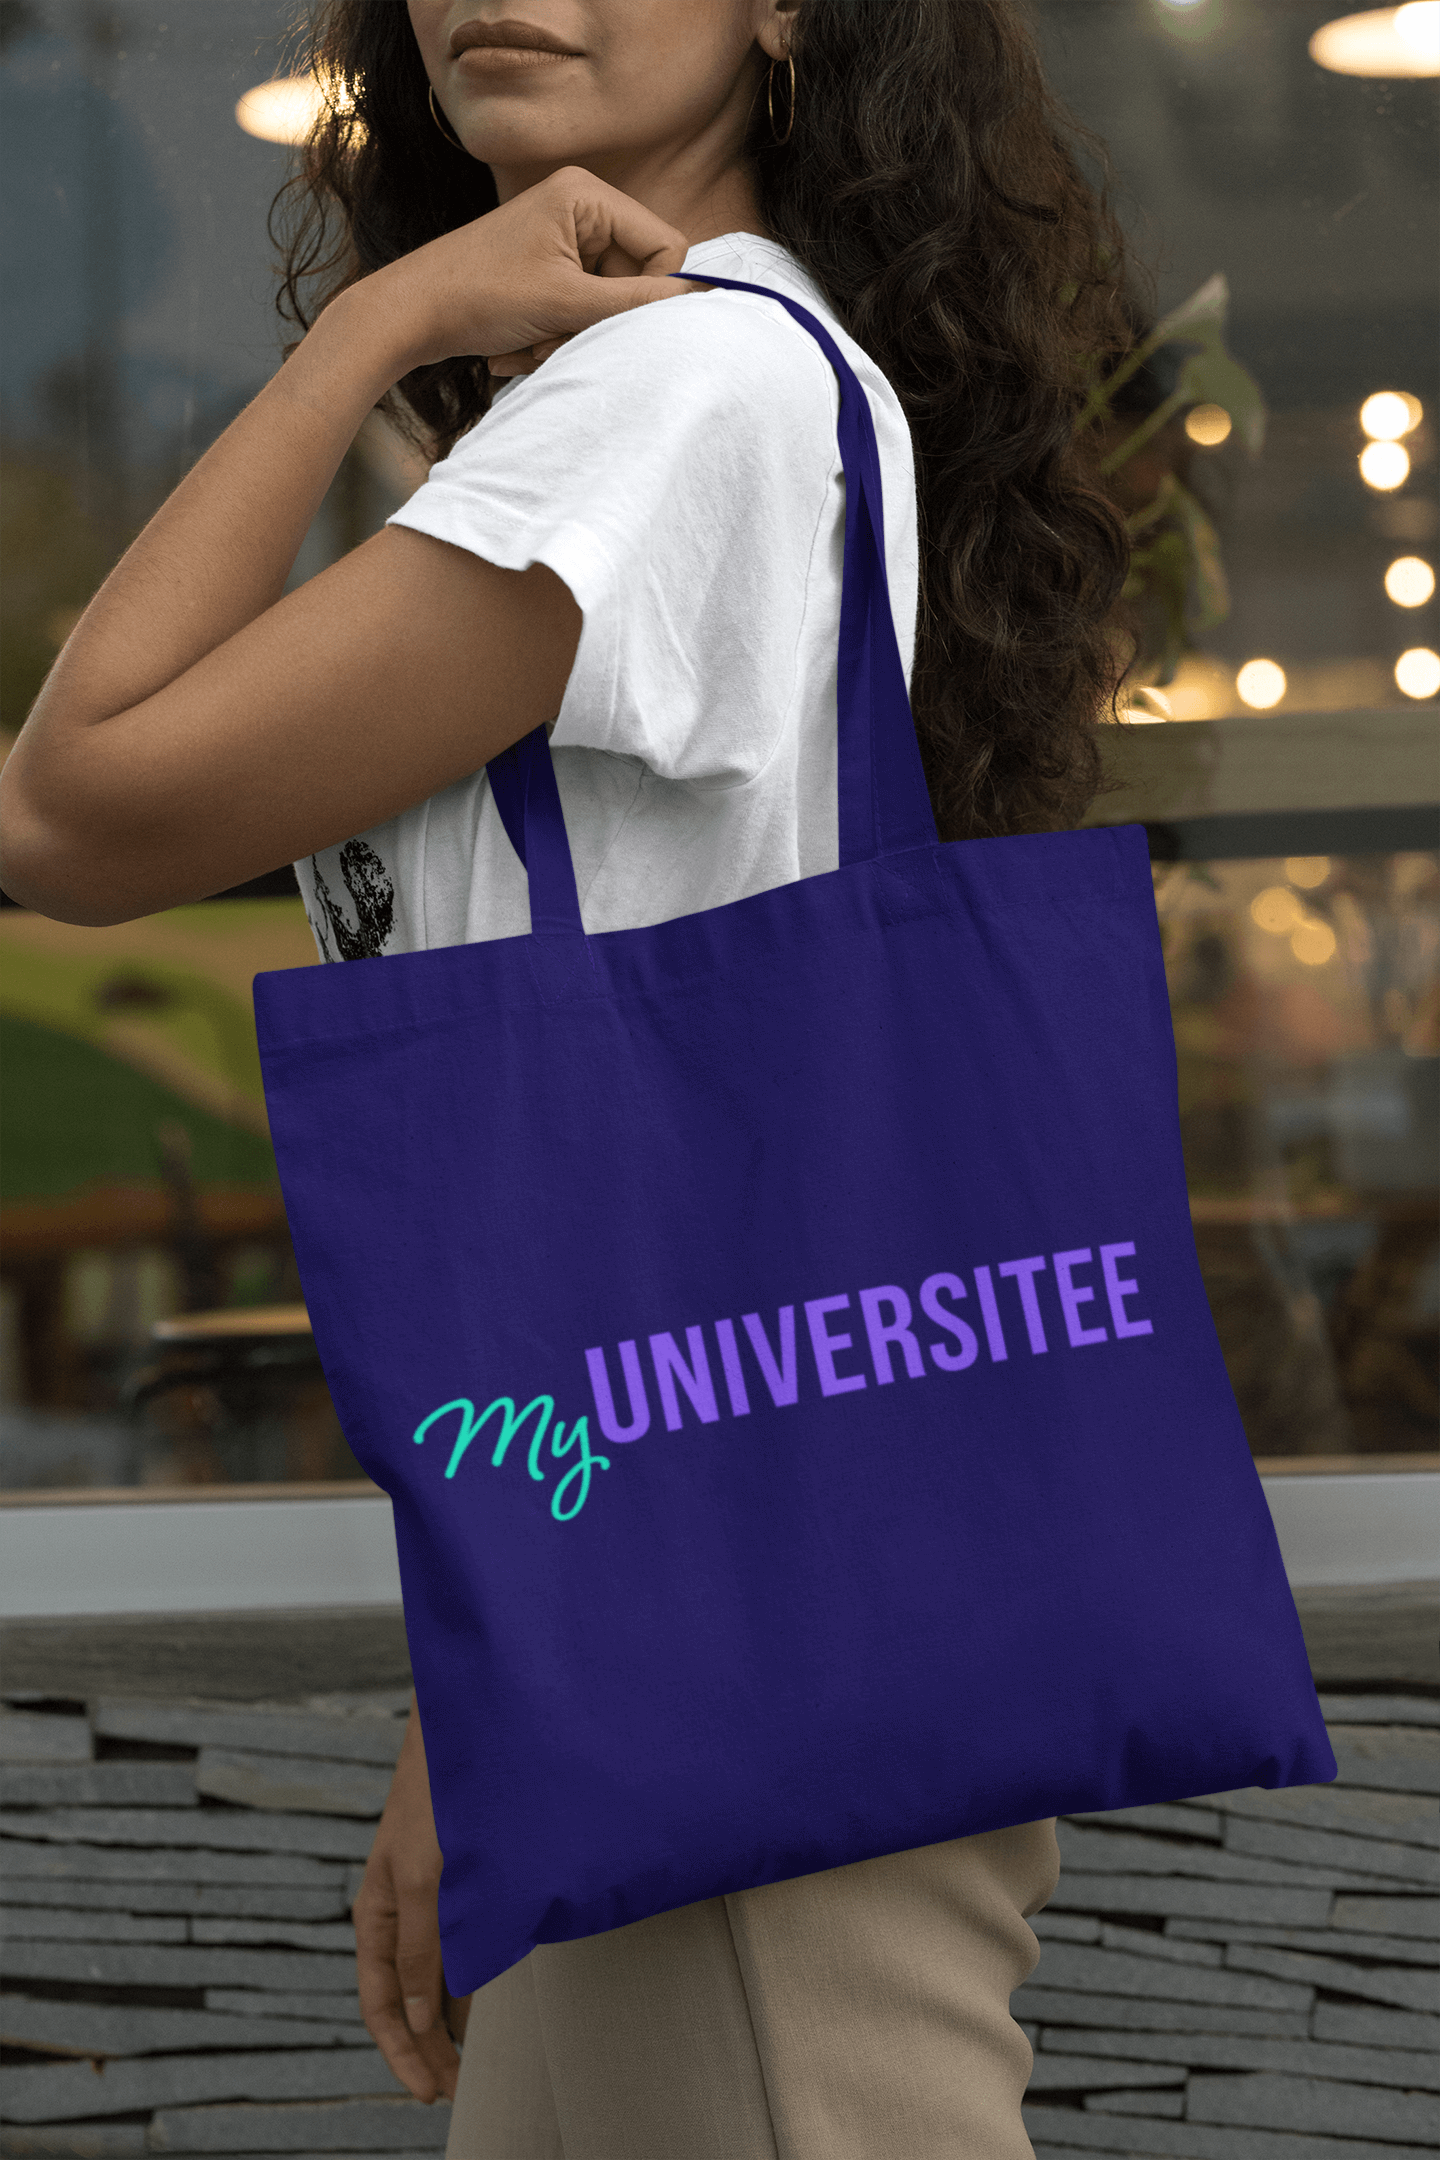 mockup-of-a-long-haired-woman-with-a-tote-bag-29455